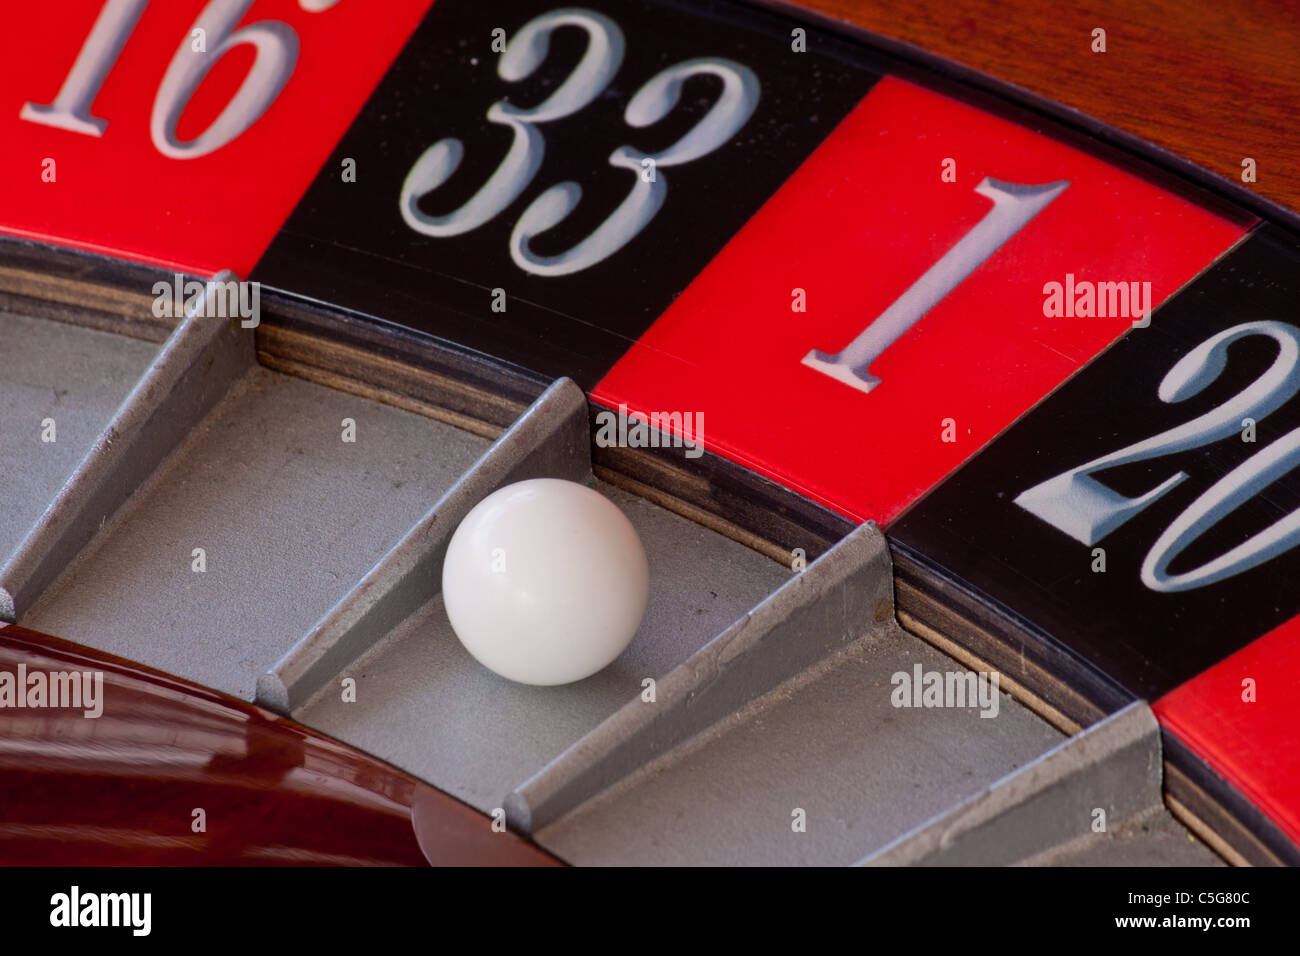 Walsall casino opening times